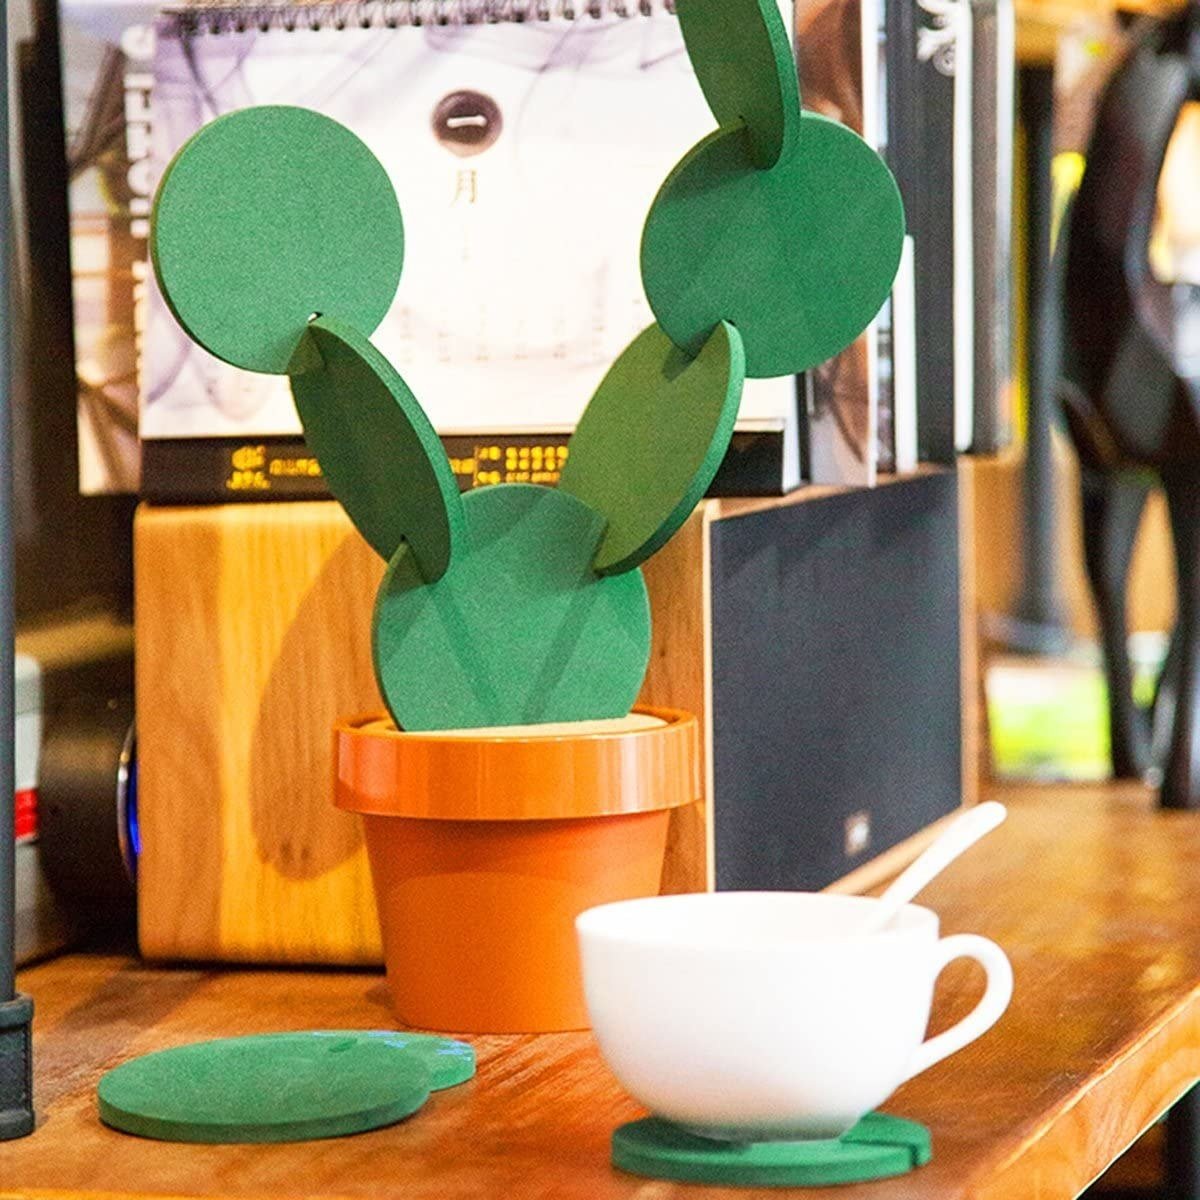 coasters that look like a cactus in a pot